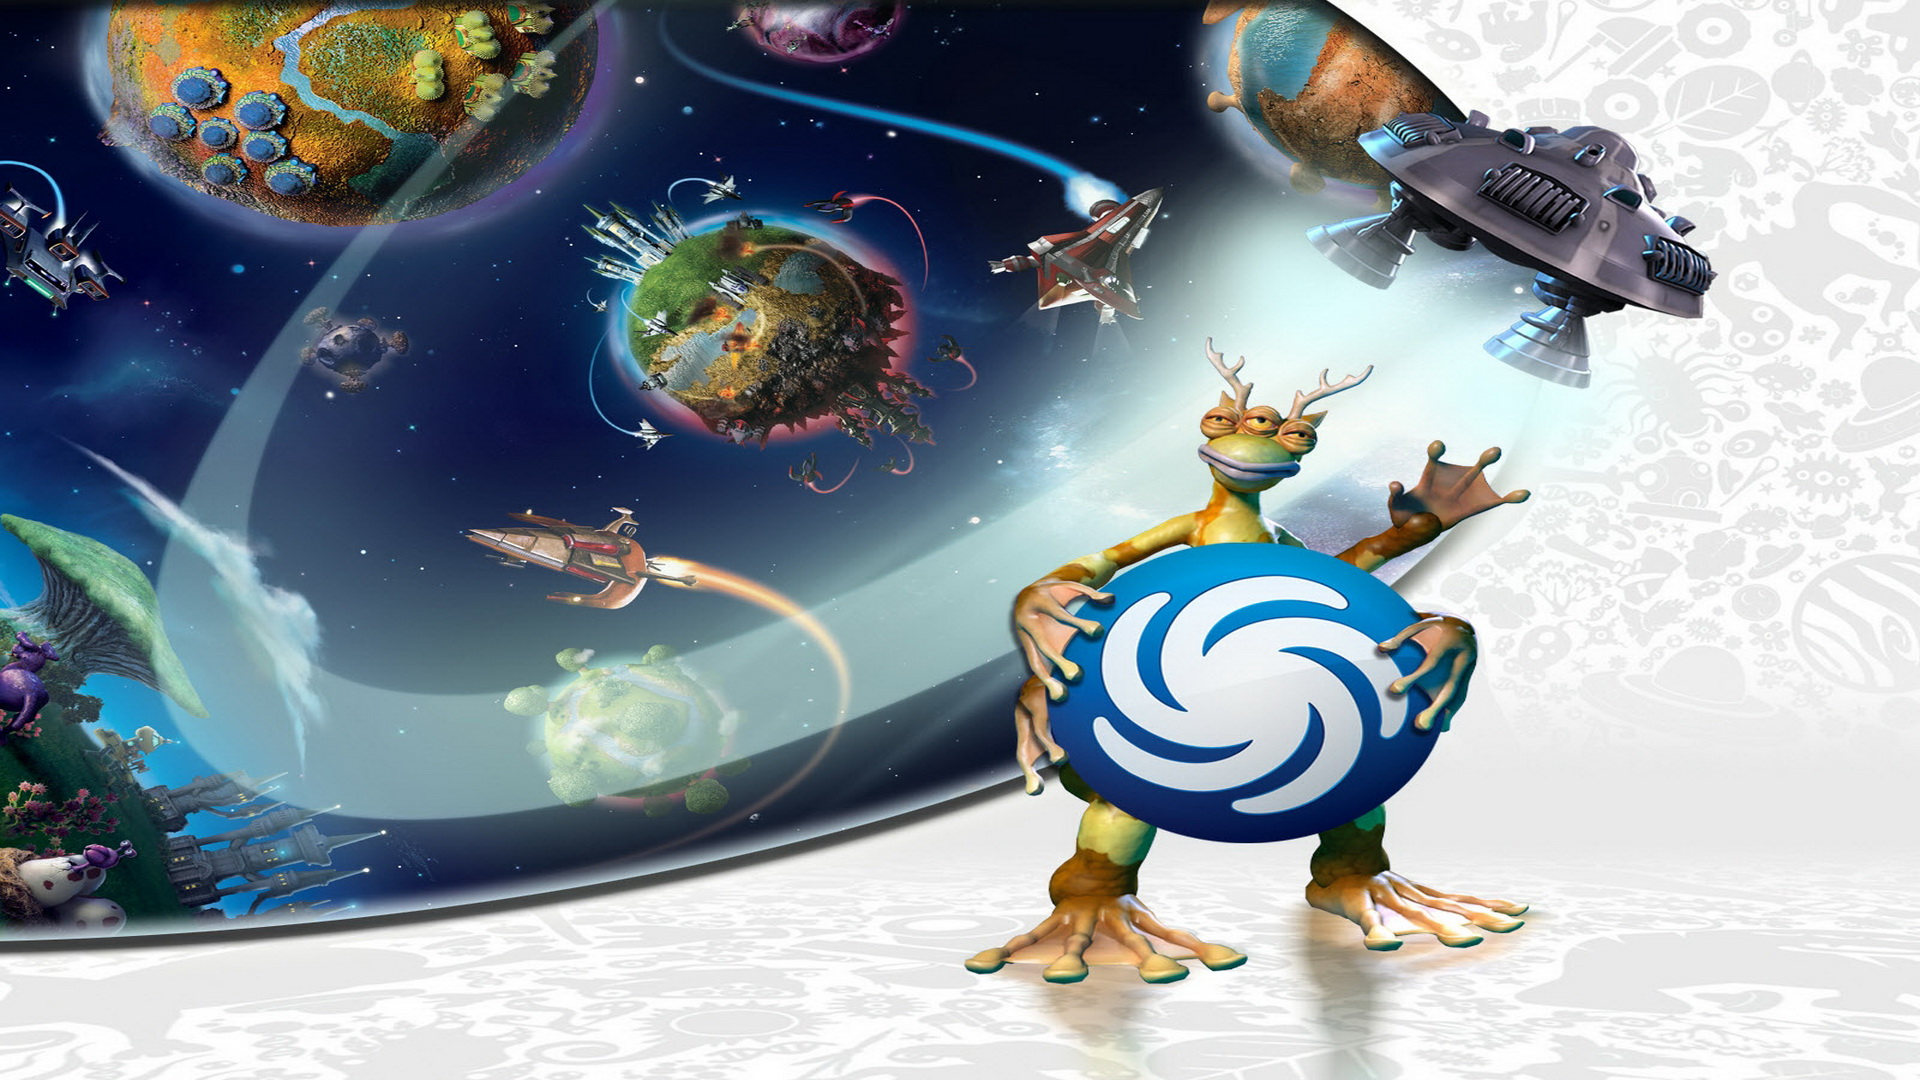 spore galactic adventures HD Wallpapers Games Wallpaper 1920x1080